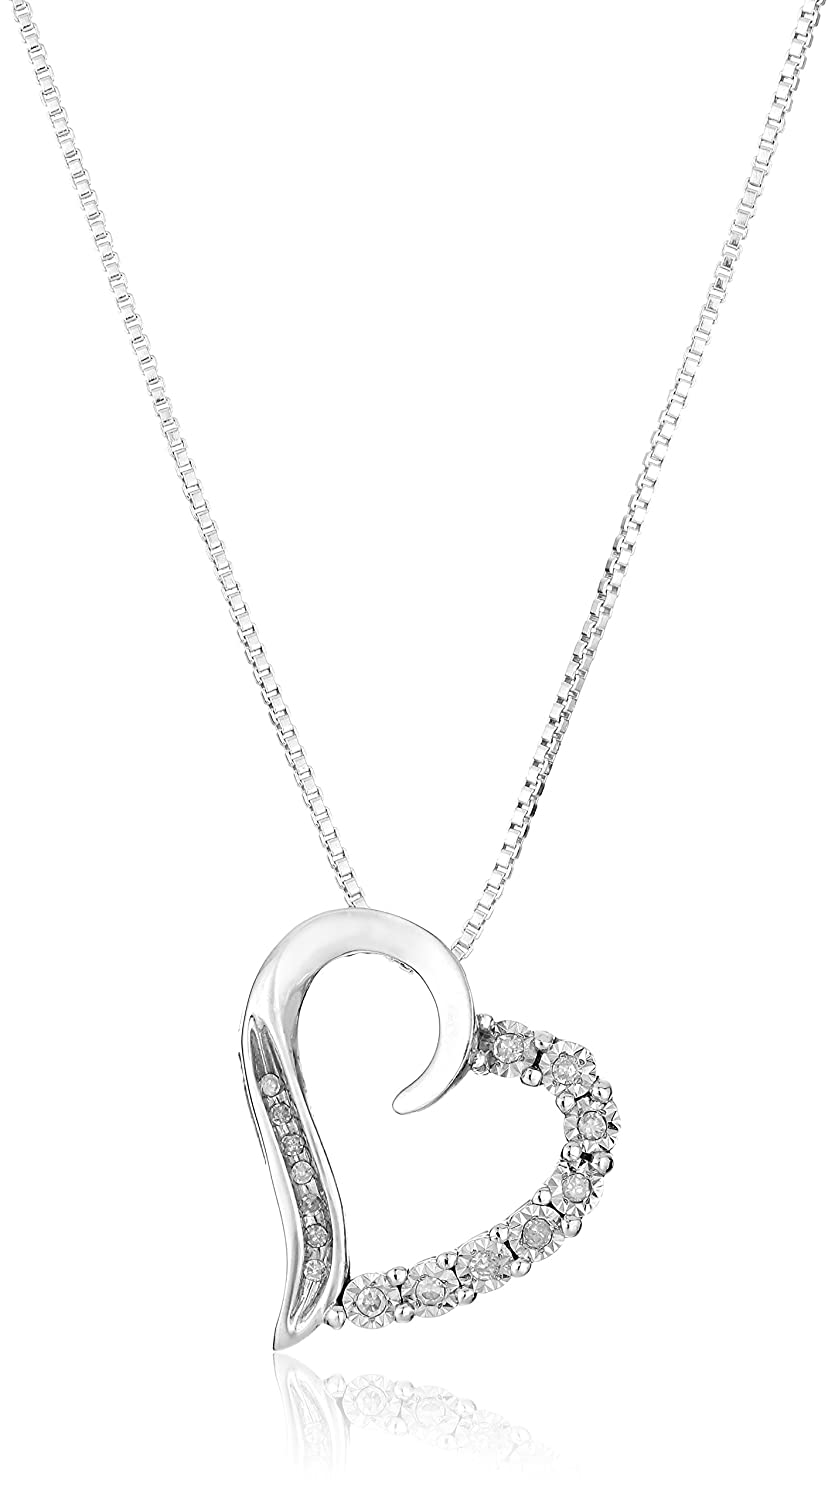 pendant white gold main diamond with robert chain necklace circle